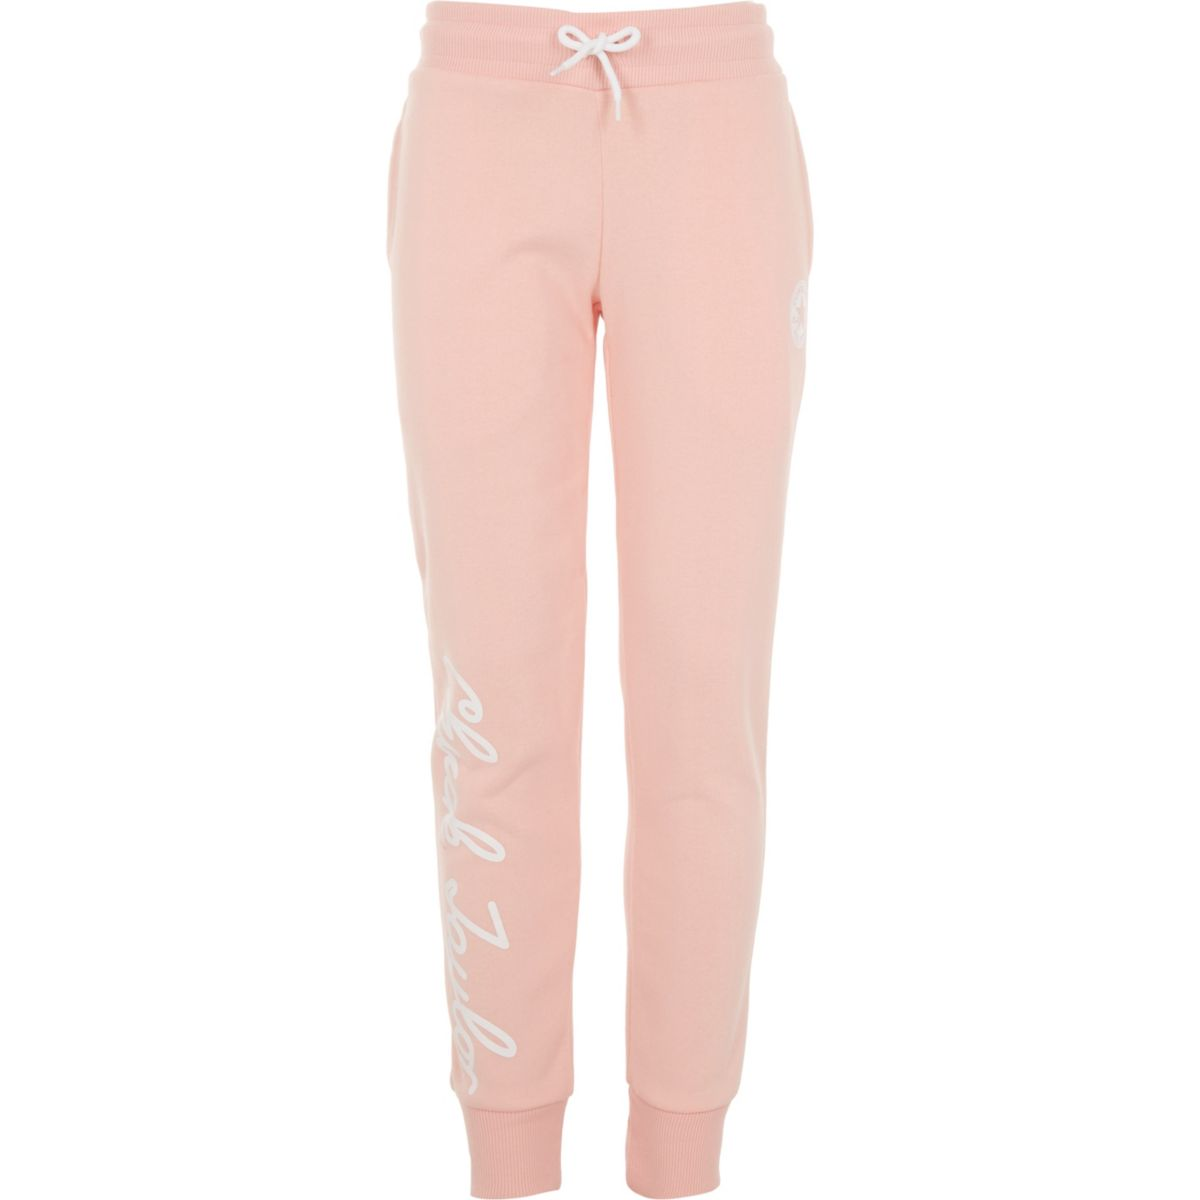 Girls Converse pink 'Chuck Taylor' joggers